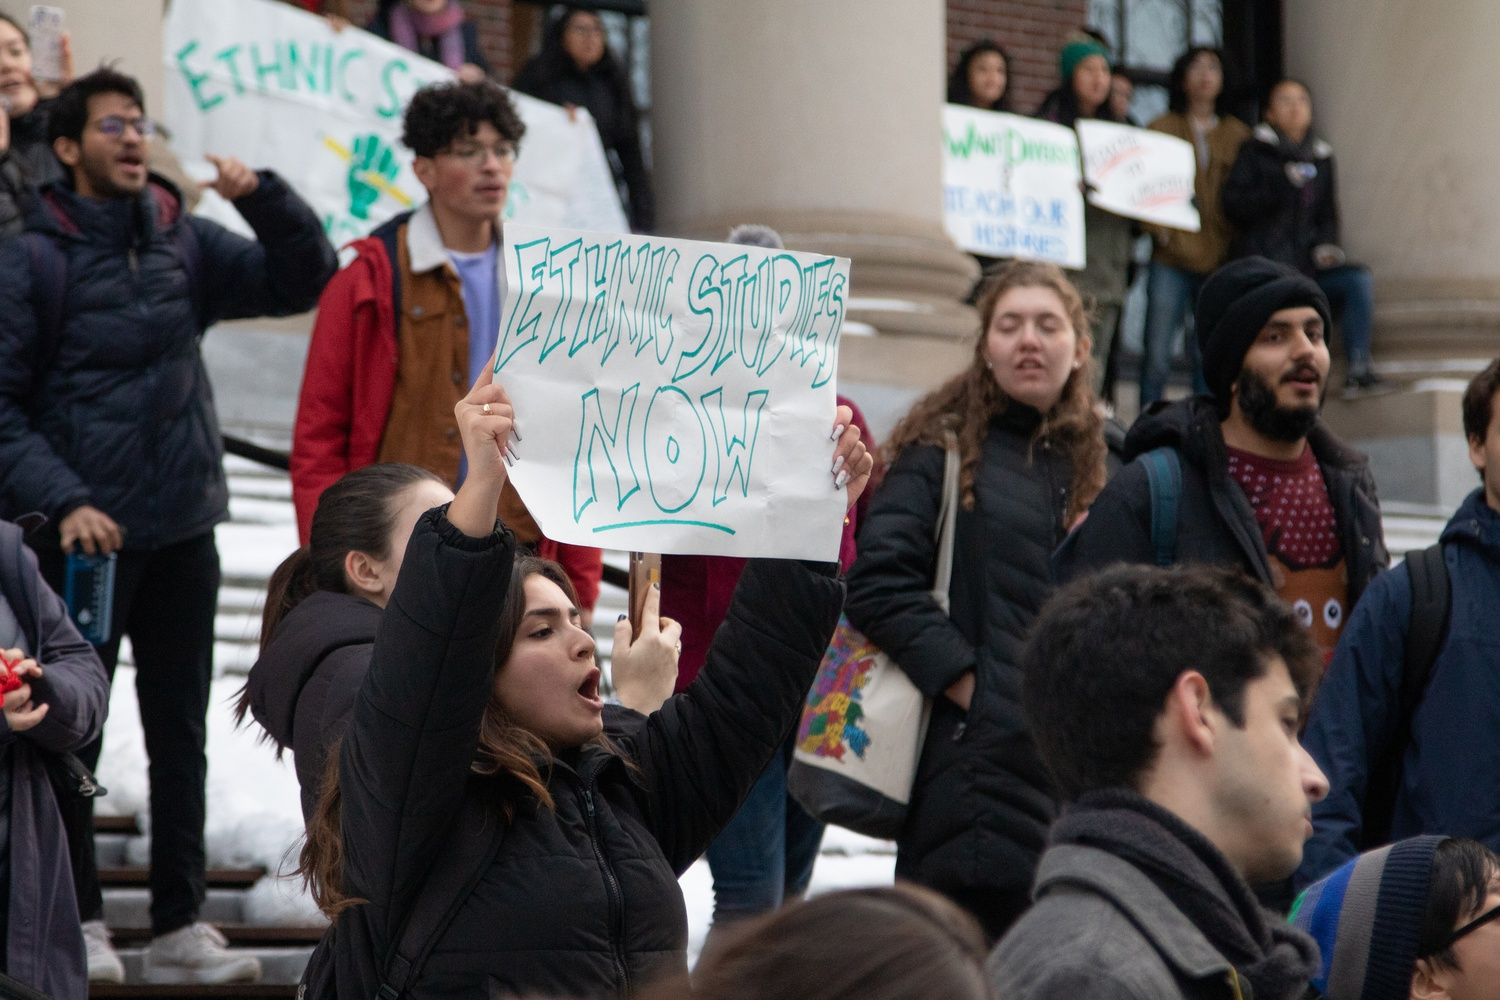 Advocates for a formalized Ethnic Studies program at Harvard rallied in front of Widener Library in early December after the University's decision to deny tenure to Romance Languages and Literatures associate professor Lorgia García Peña.